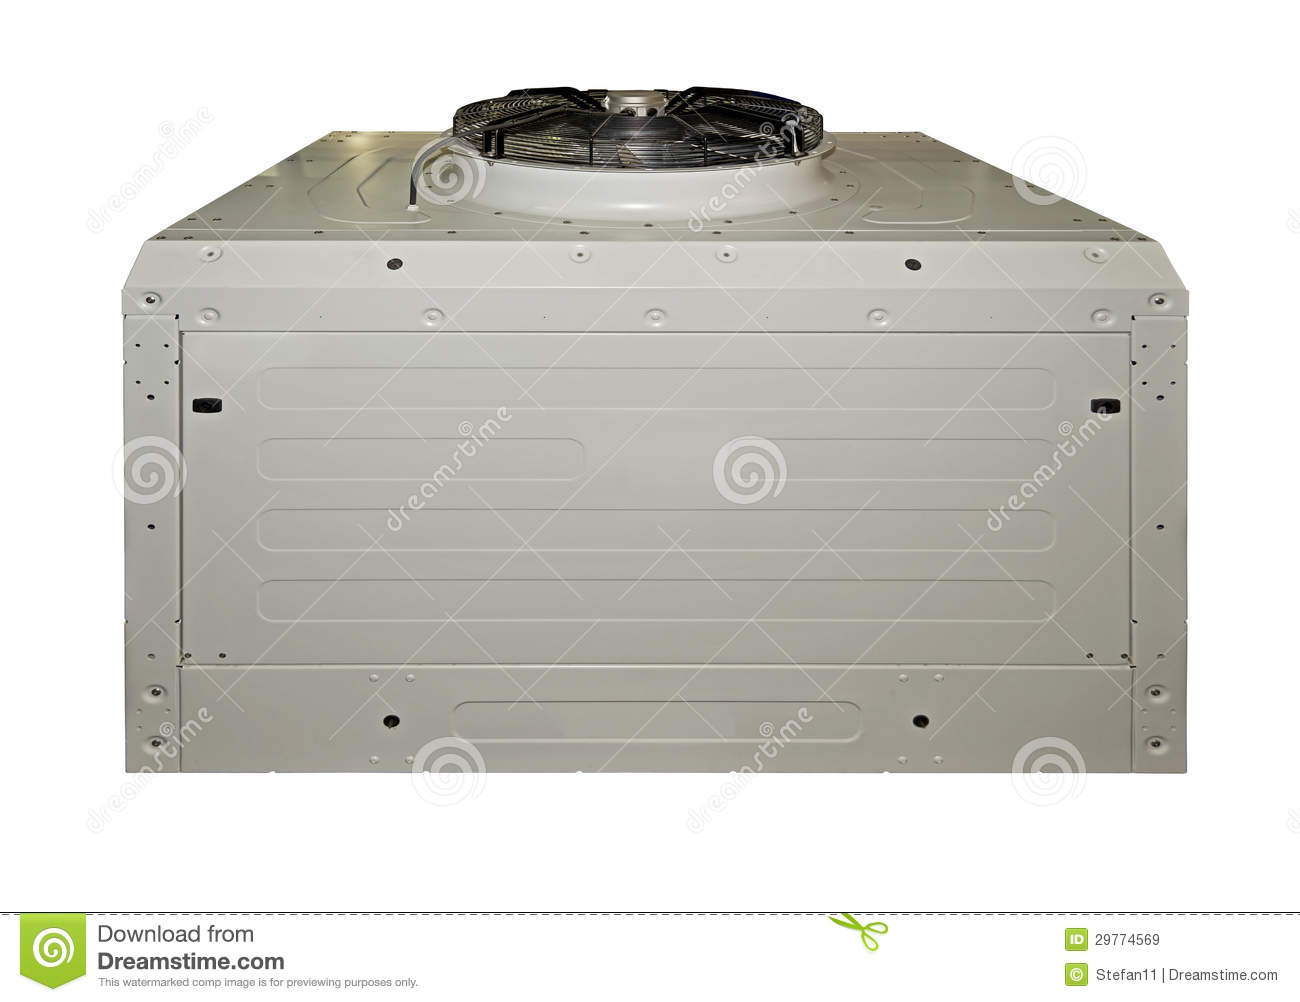 Industrial Air Conditioner Royalty Free Stock Images Image: 29774569 #85A724